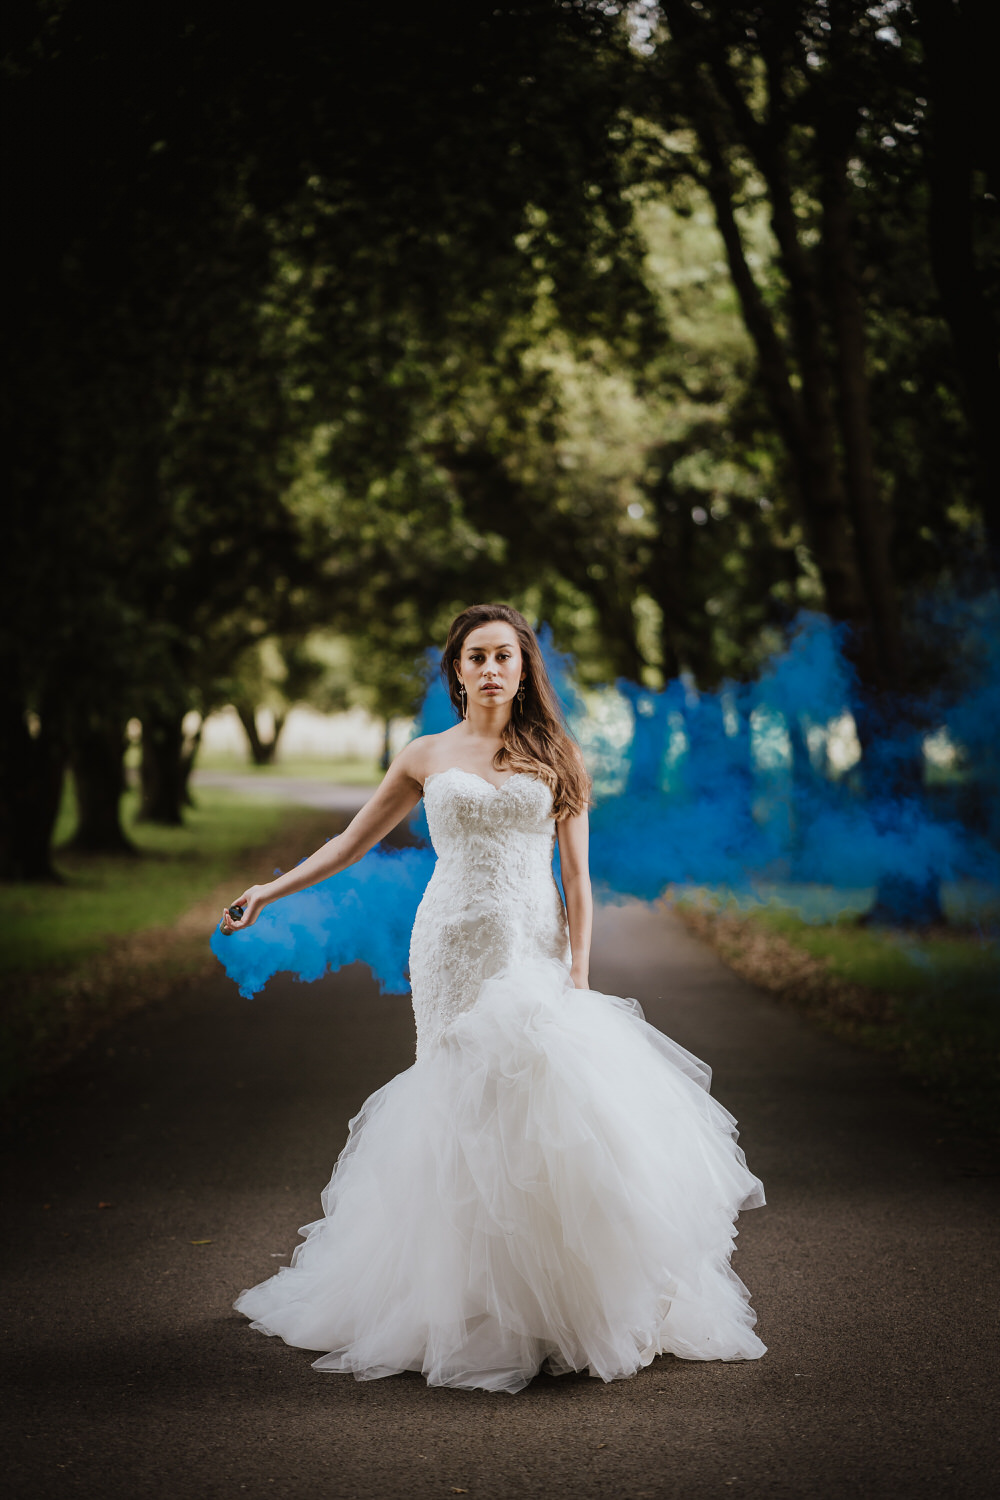 Smoke Bomb Bride Bridal Dress Gown Fit Flare Lace StraplessPylewell Park Wedding New Forest Studio